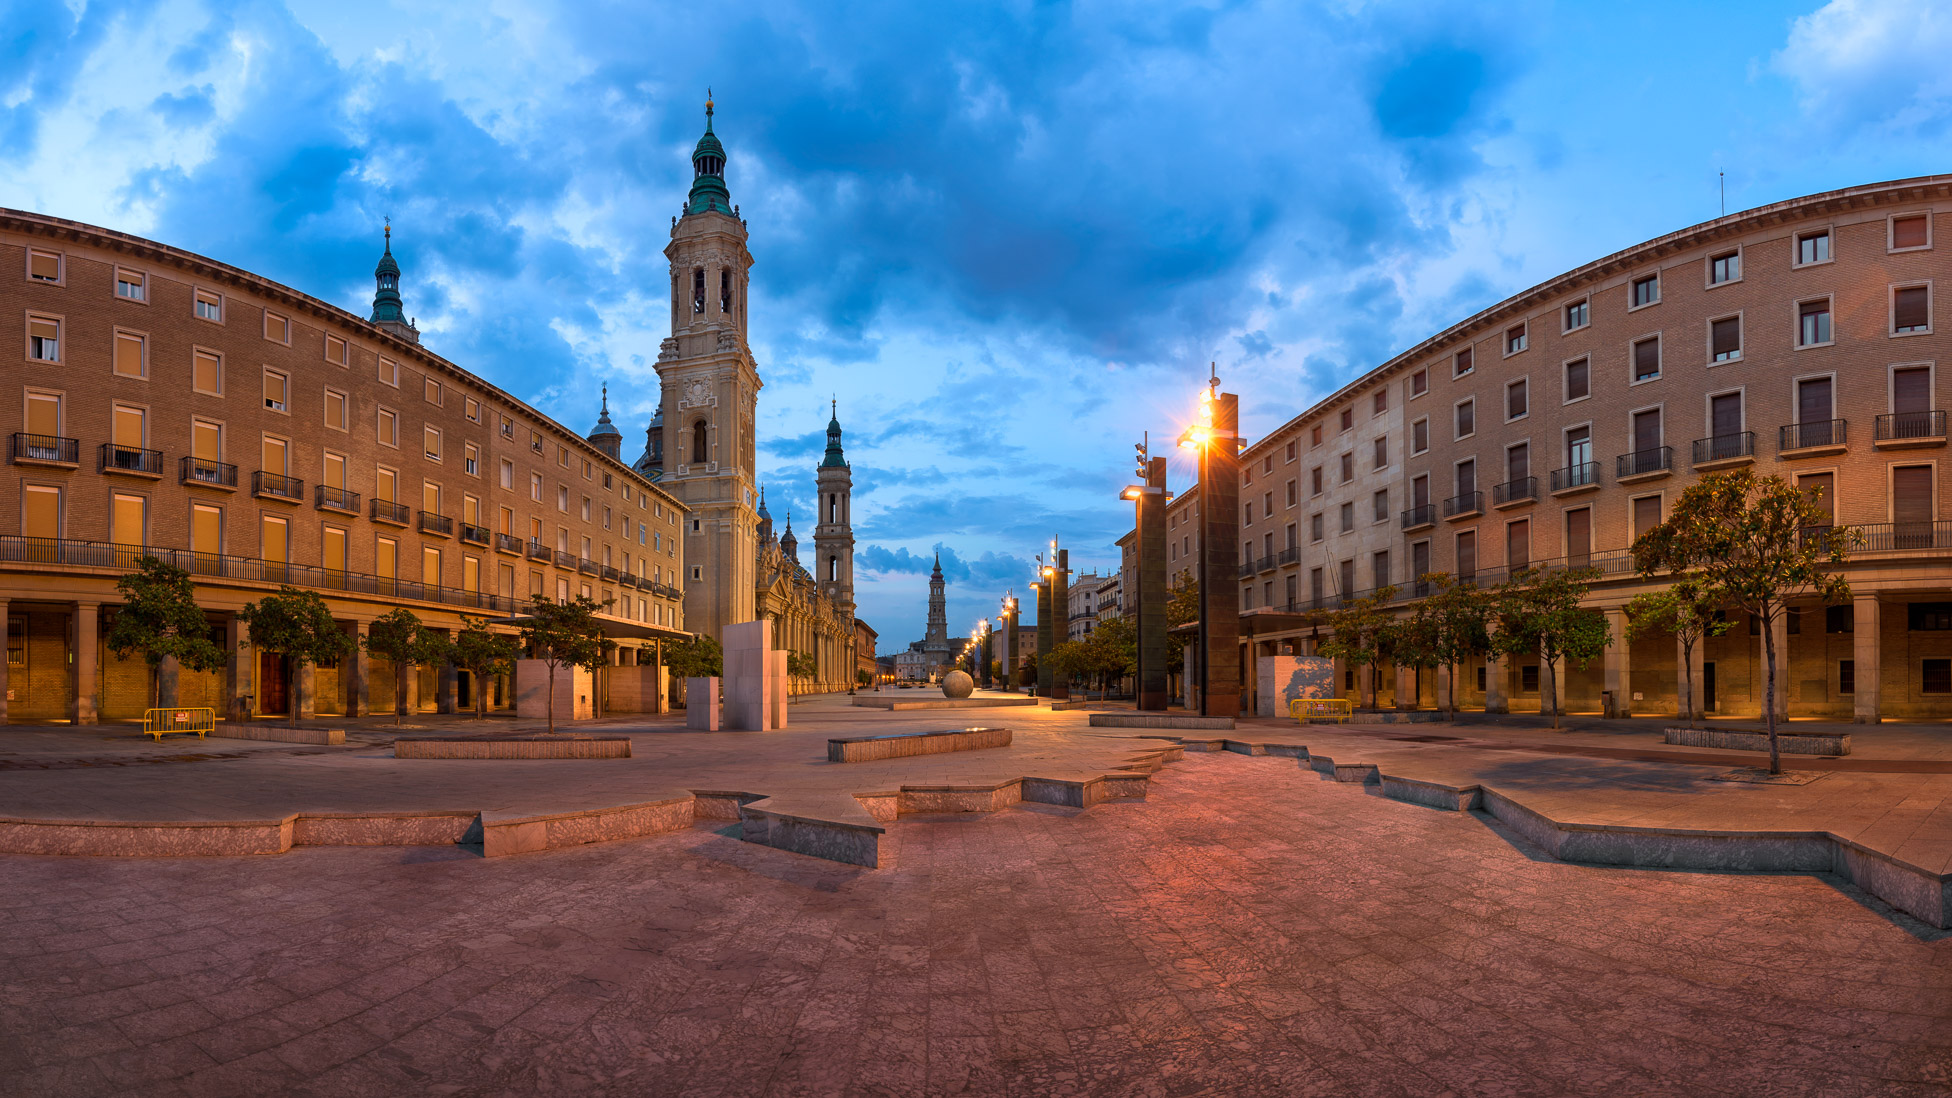 Panorama of Plaza del Pilar and Basilica of Our Lady of the Pillar in the Morning, Zaragoza, Aragon, Spain